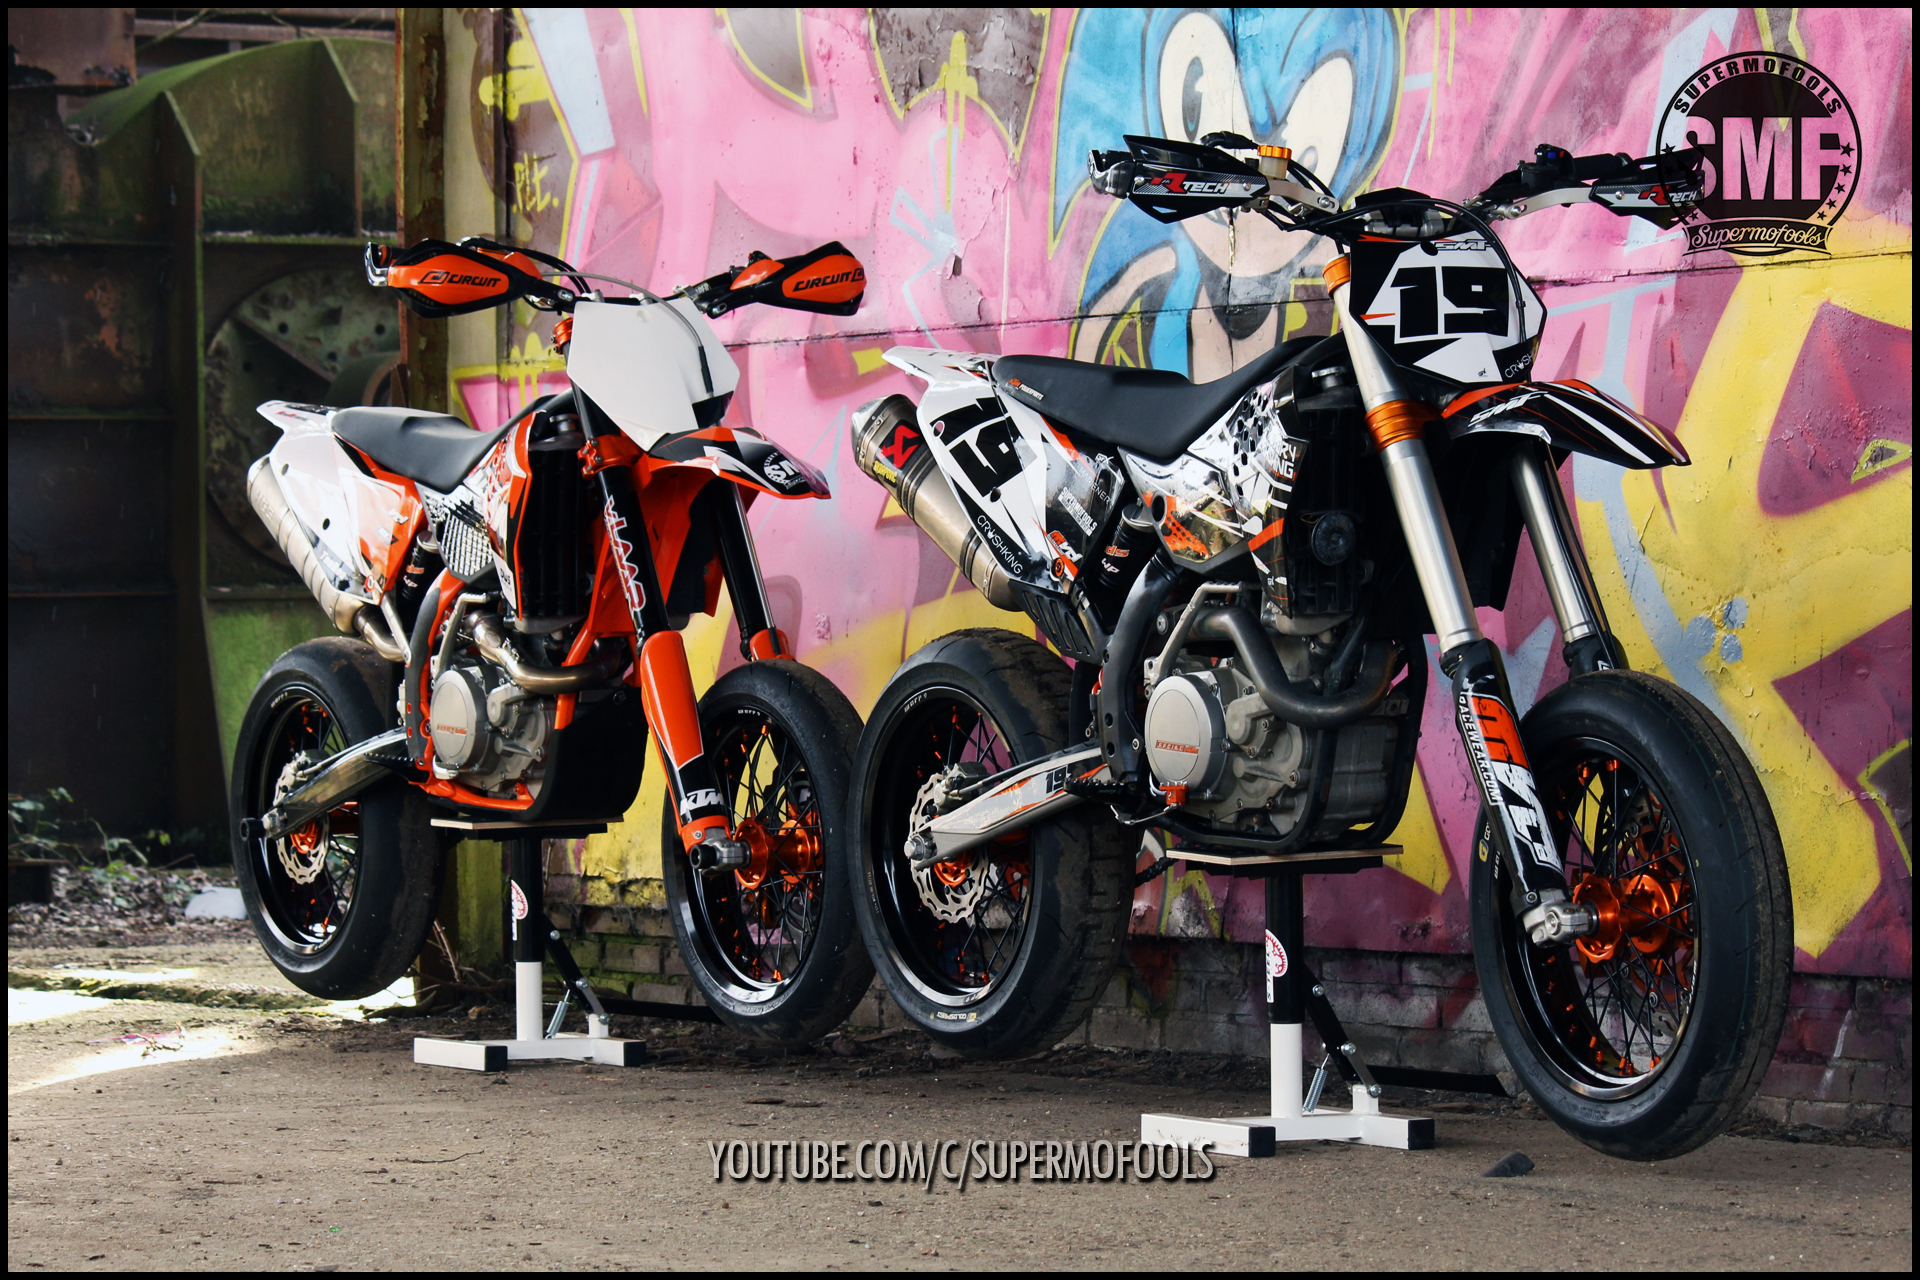 KTM EXC530s Custom Built Supermotos SUPERMOFOOLS